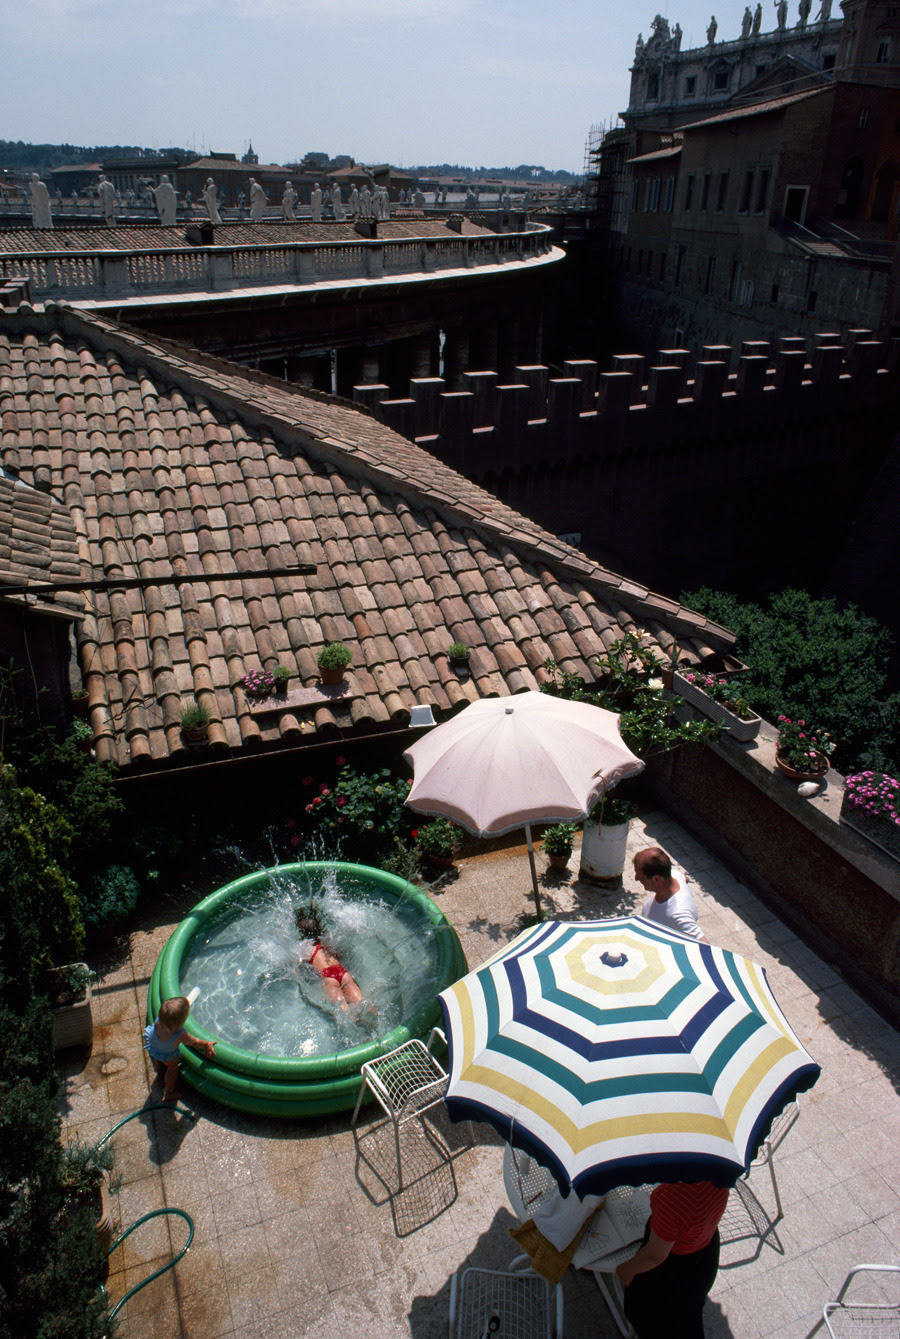 A married Swiss Guard and his family enjoy a patio pool at their compound in Vatican City, 1985.Photograph by James L. Stanfield, National Geographic